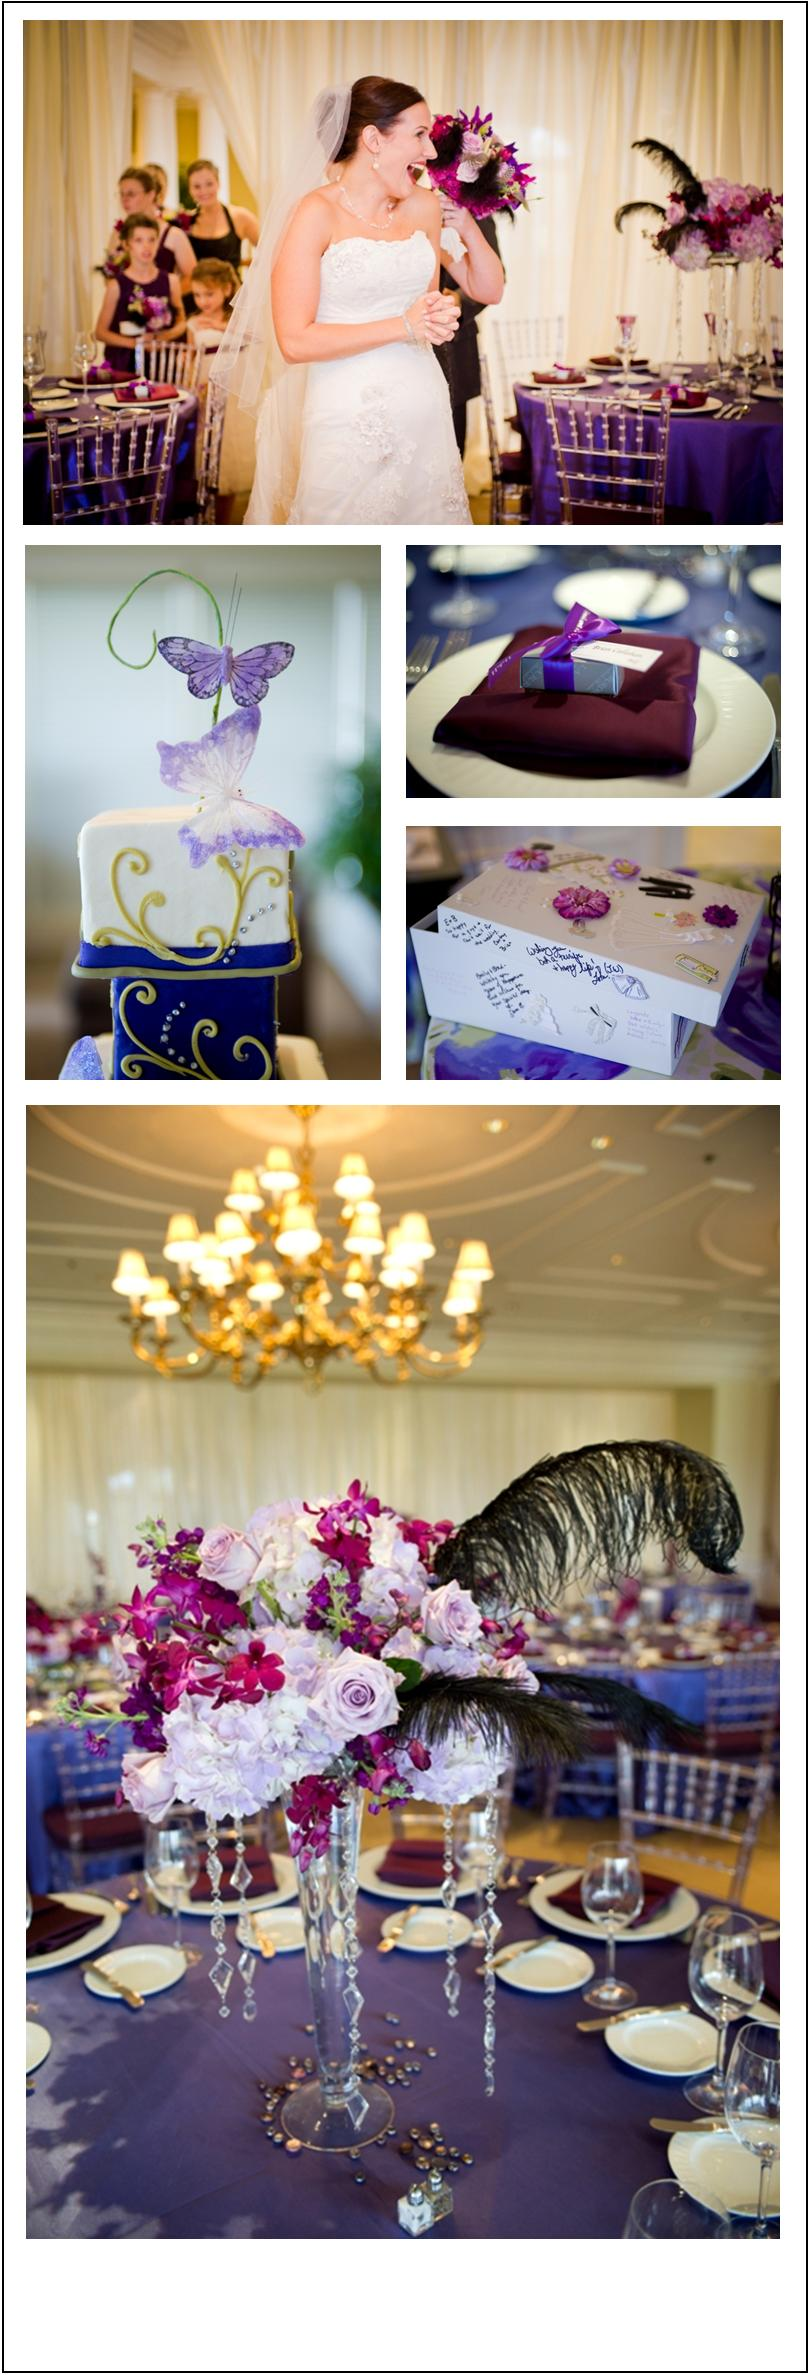 Lake Nona Reception Details - purple and plum wedding